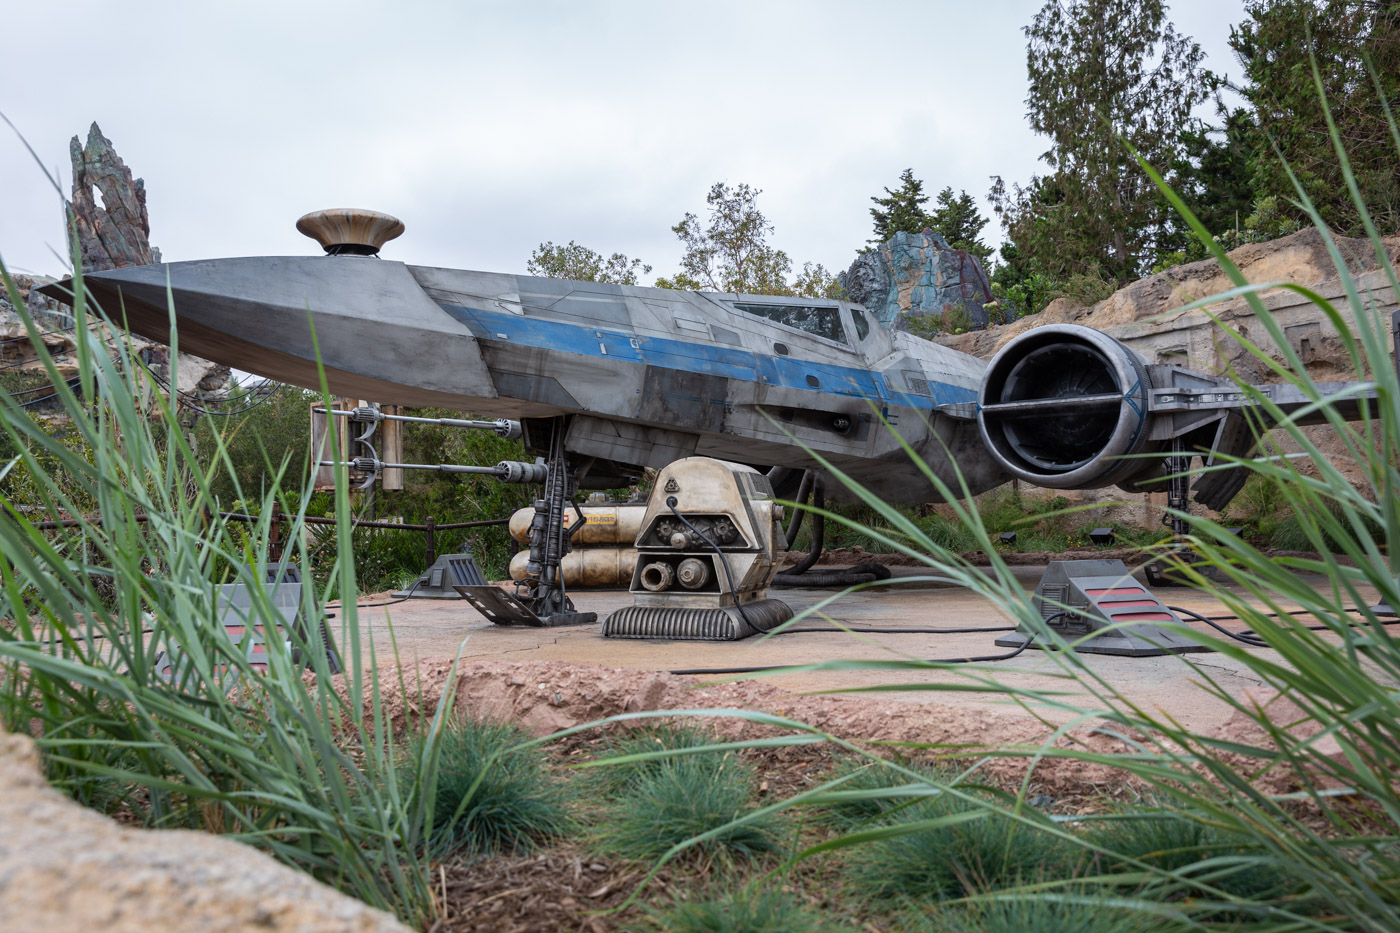 The outter rim in Batuu inside Star Wars Land at Disneyland. Galaxy's Edge at Disneyland